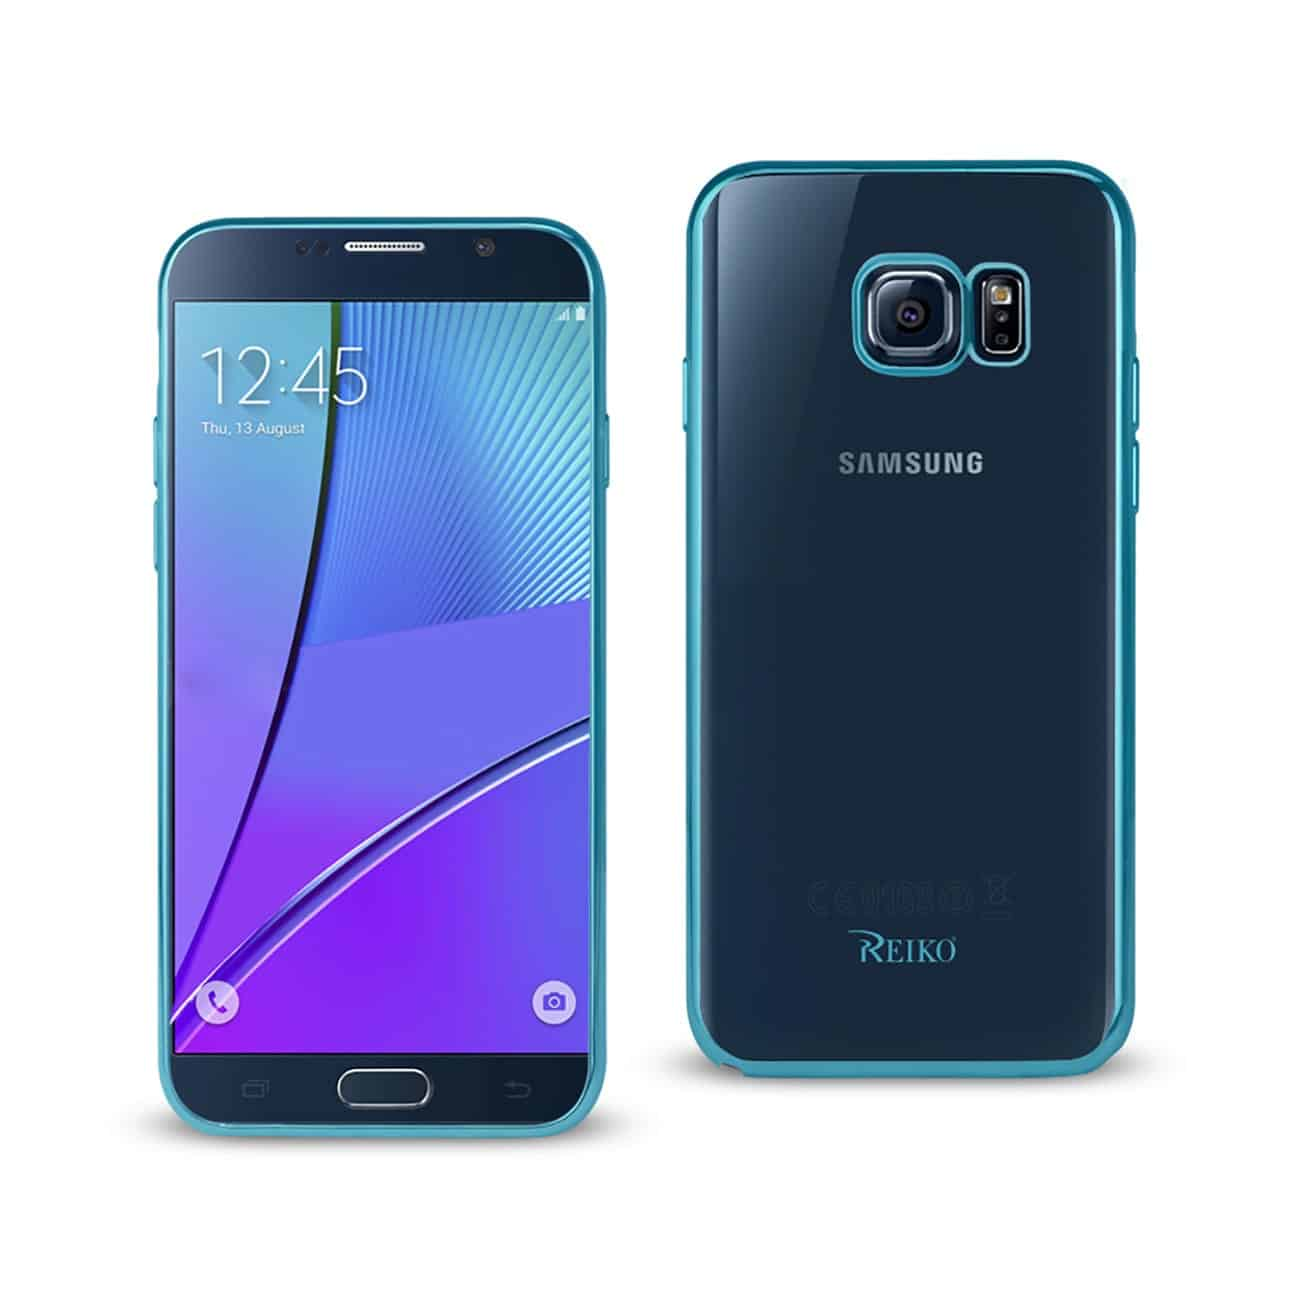 SAMSUNG GALAXY NOTE 5 FRAME CASE IN SHINY BLUE